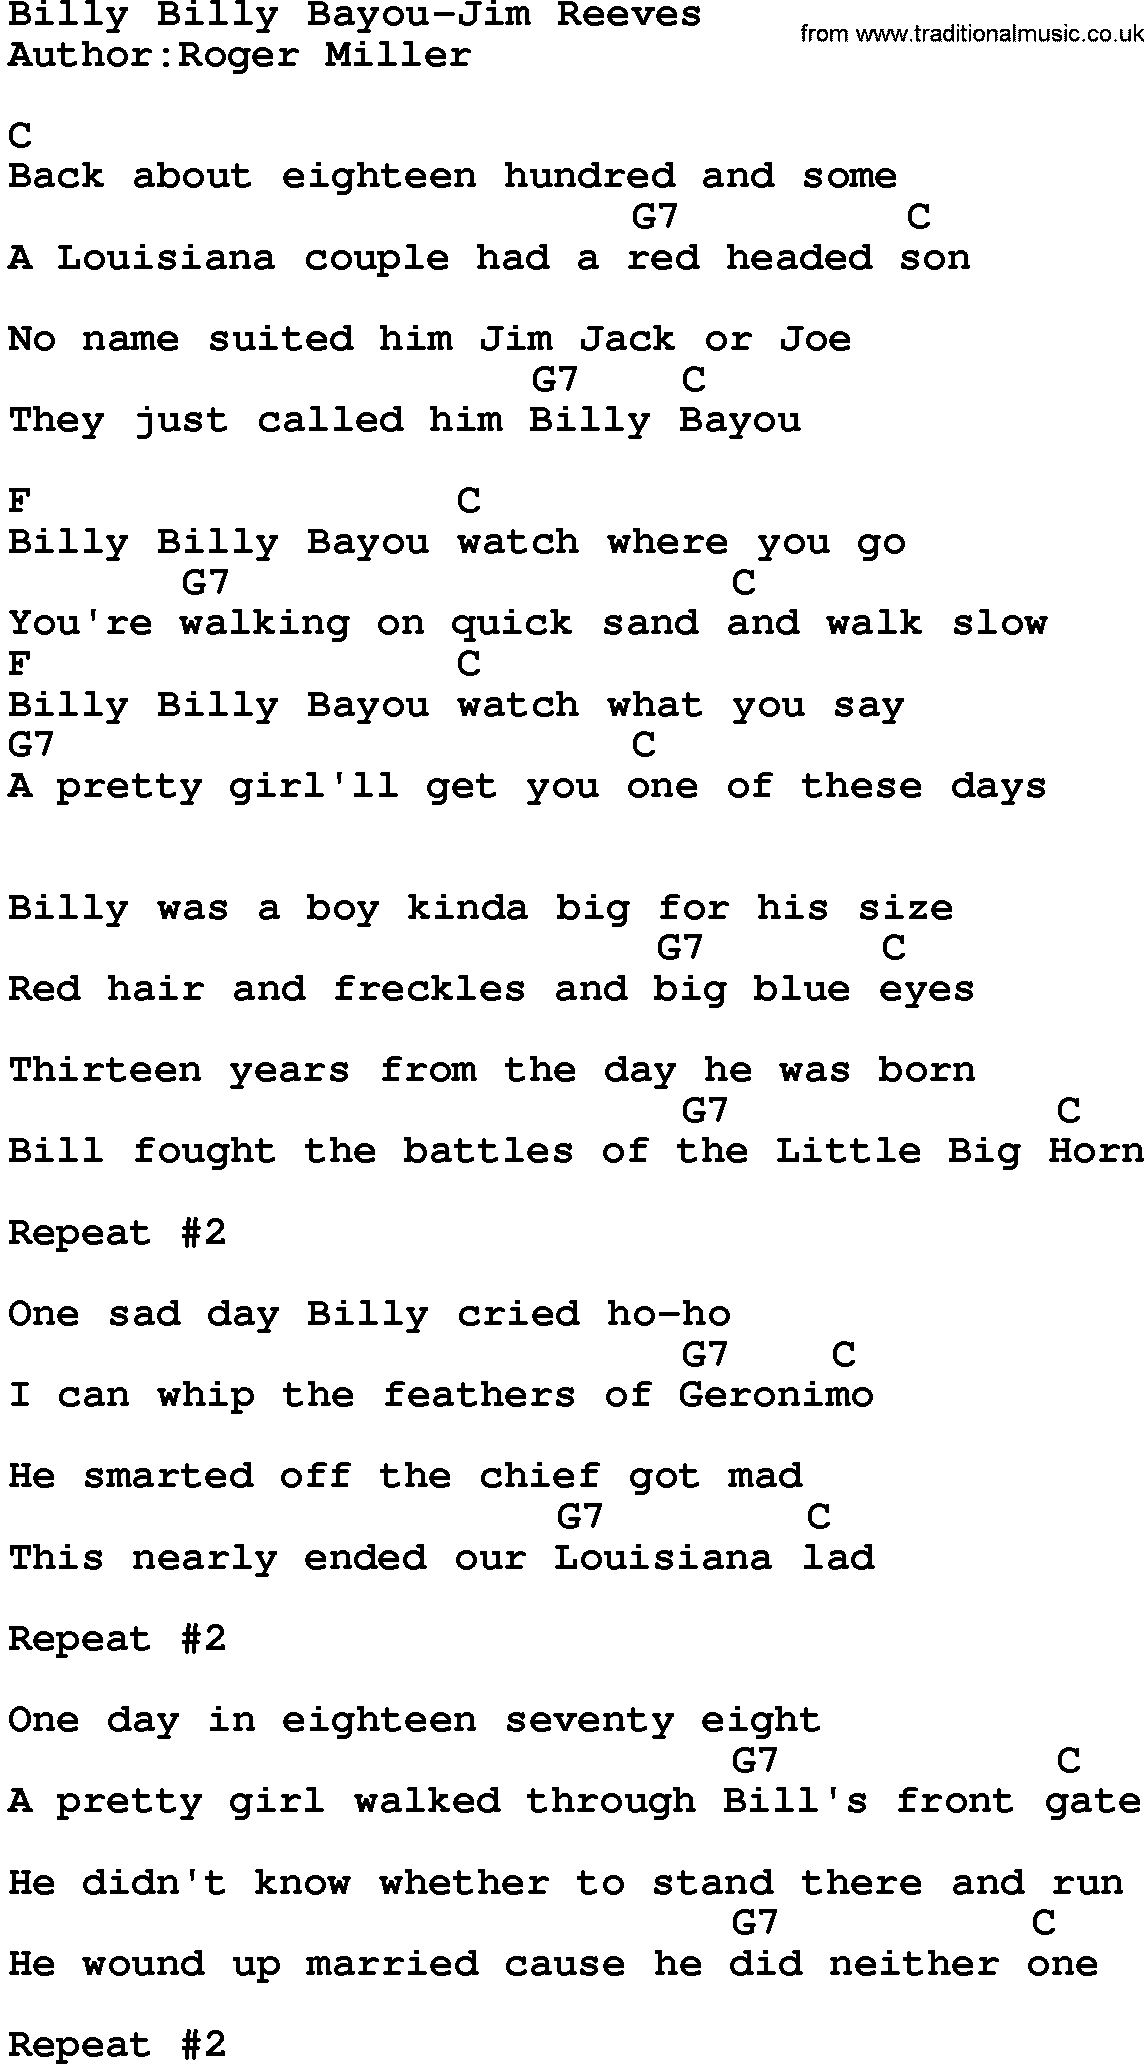 Country Musicbilly Billy Bayou Jim Reeves Lyrics And Chords